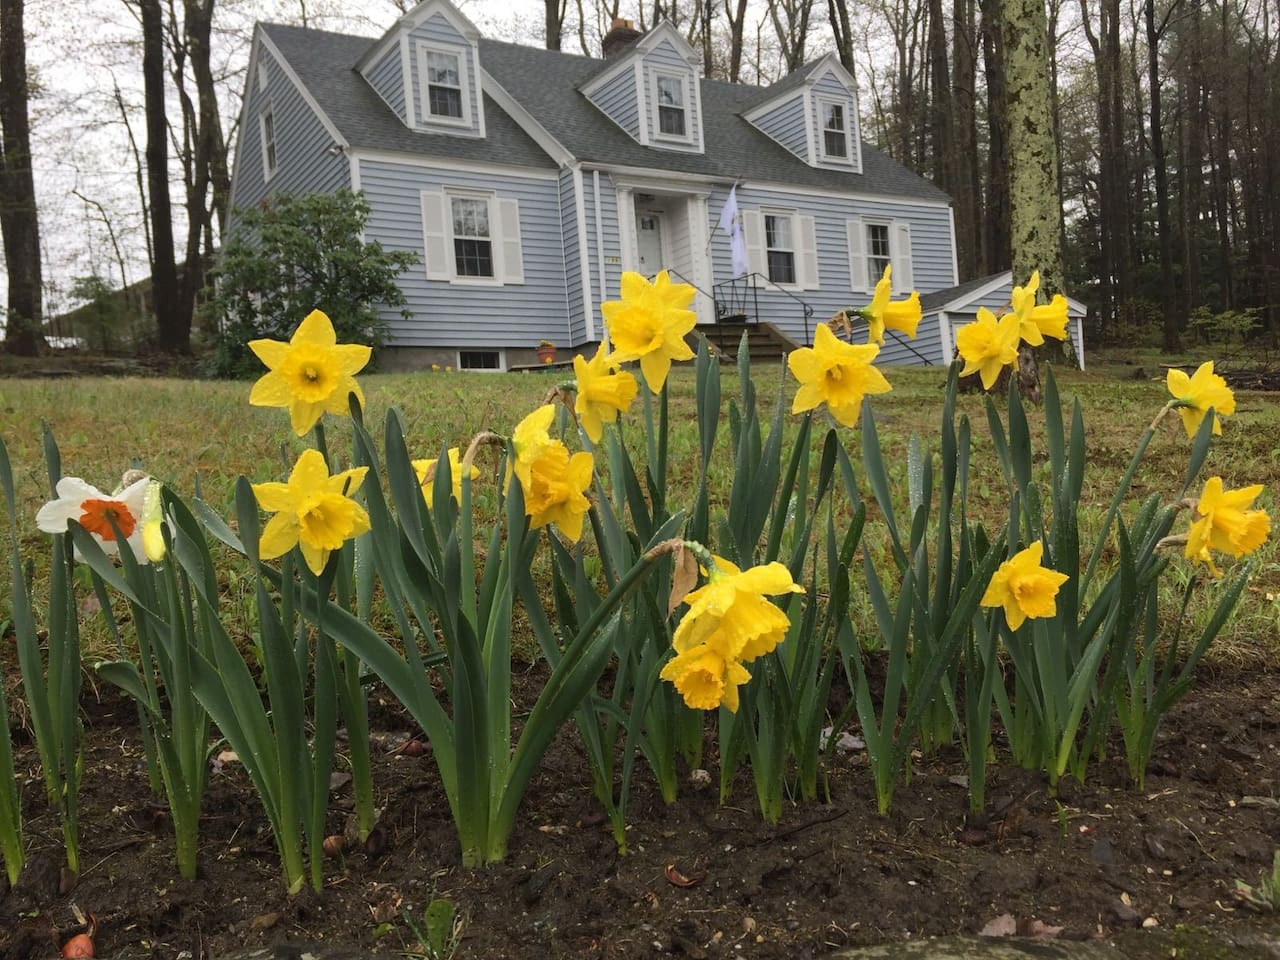 Street view of the house with Daffodils in bloom.